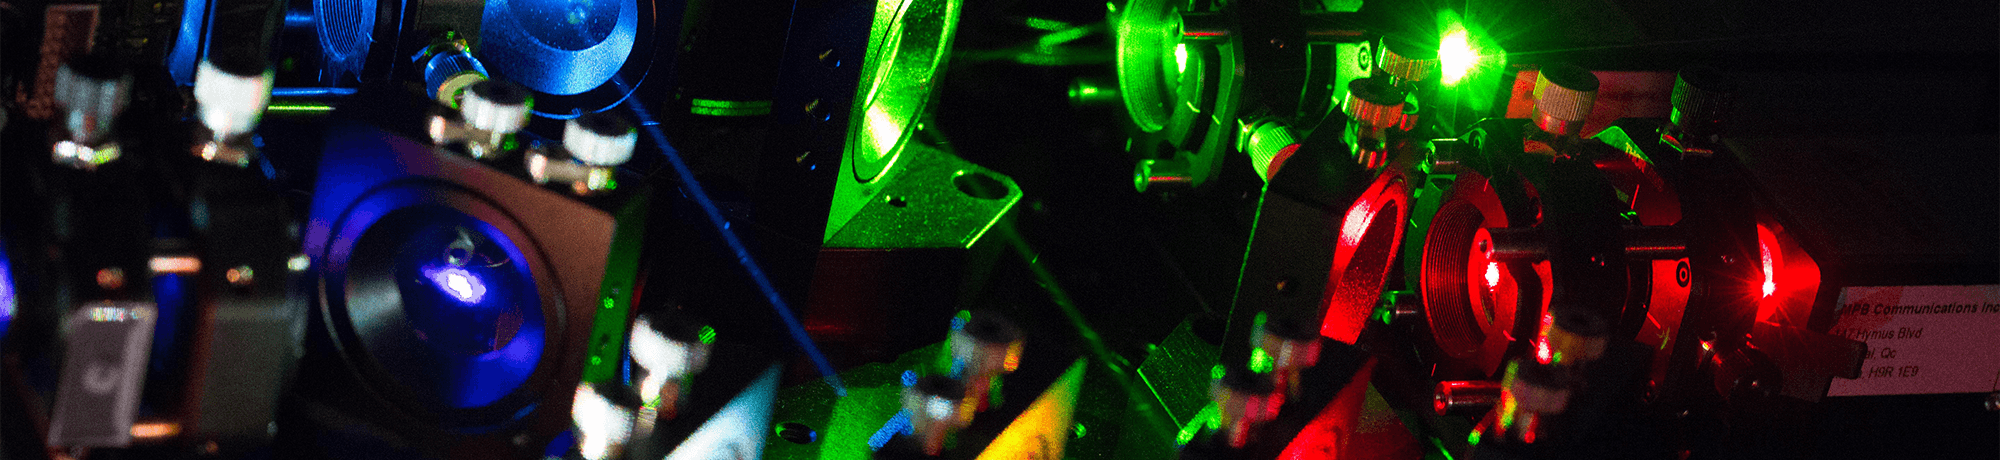 A close up view of the Lattice Light-Sheet Microscope